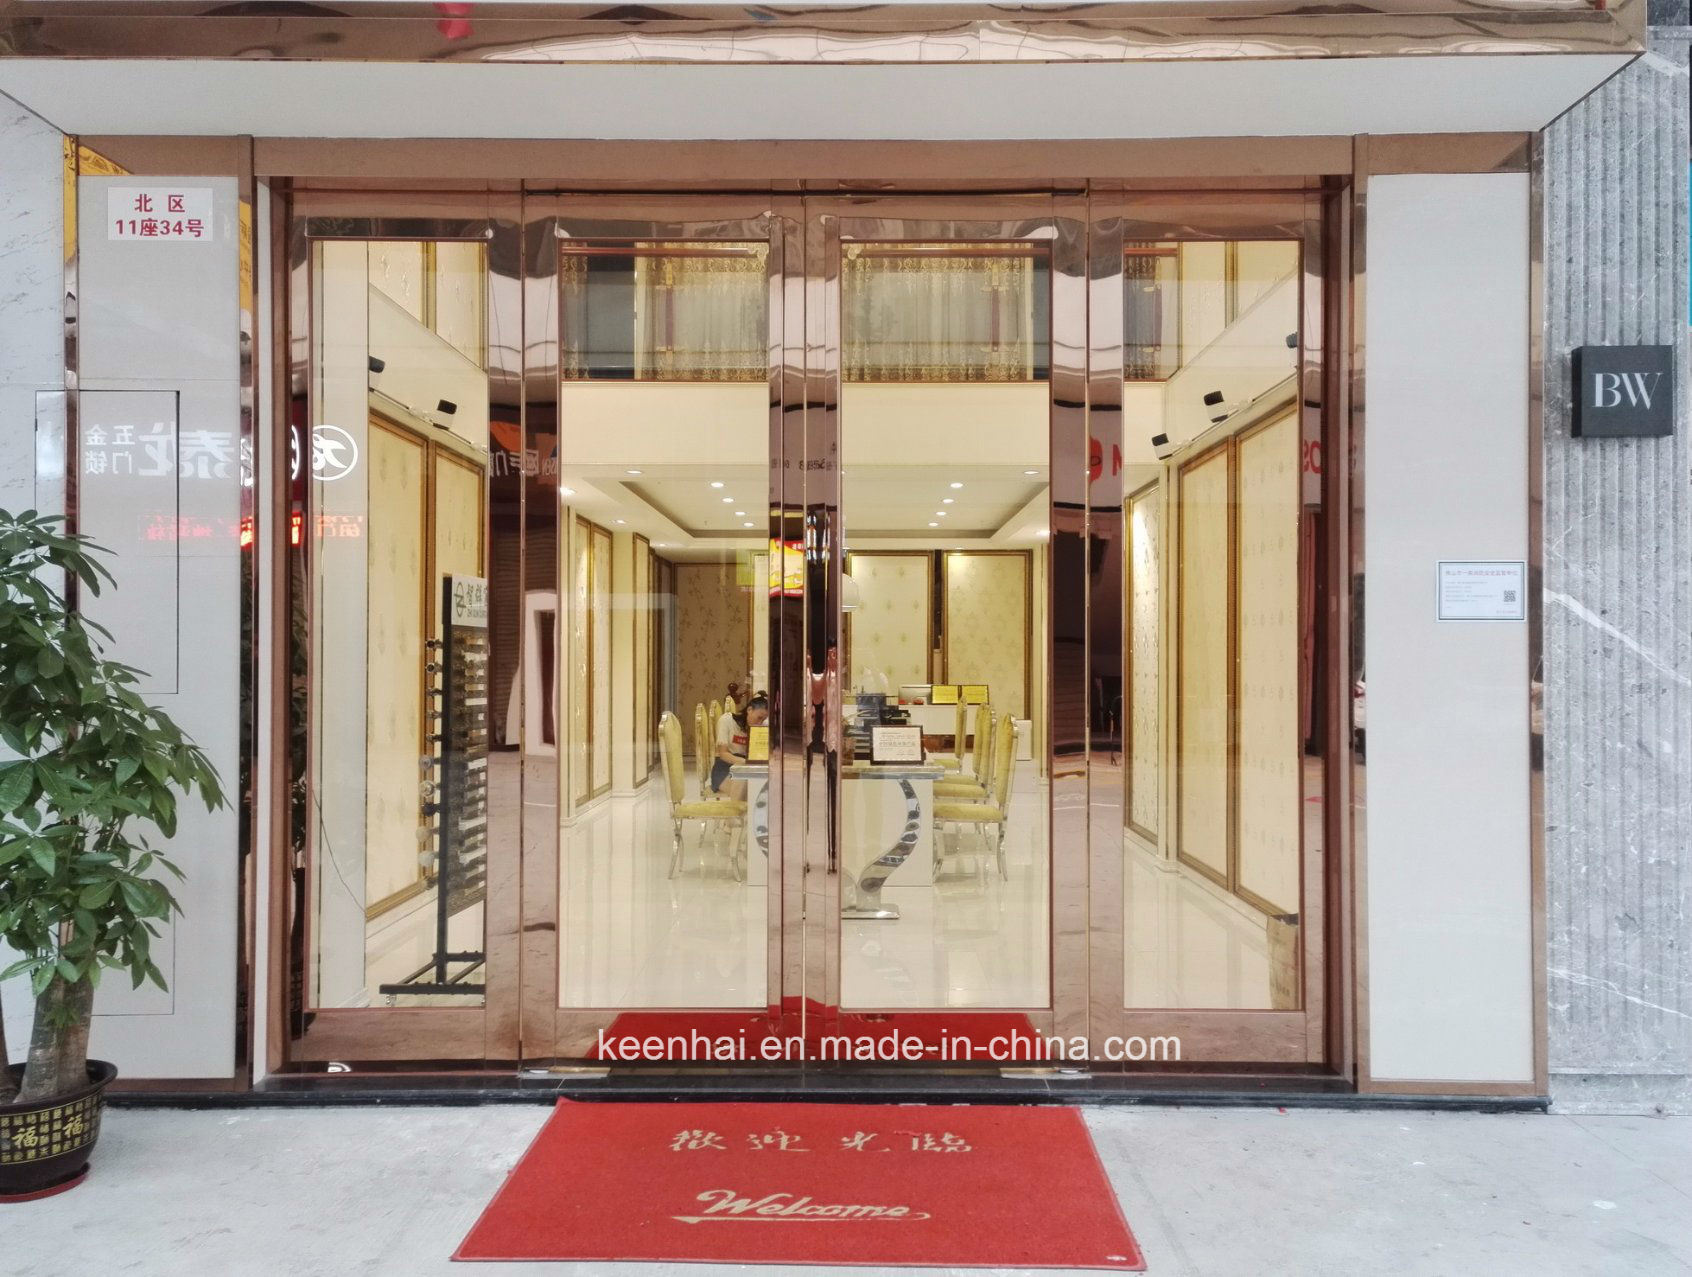 Exterior stainless steel glass commercial entry doors